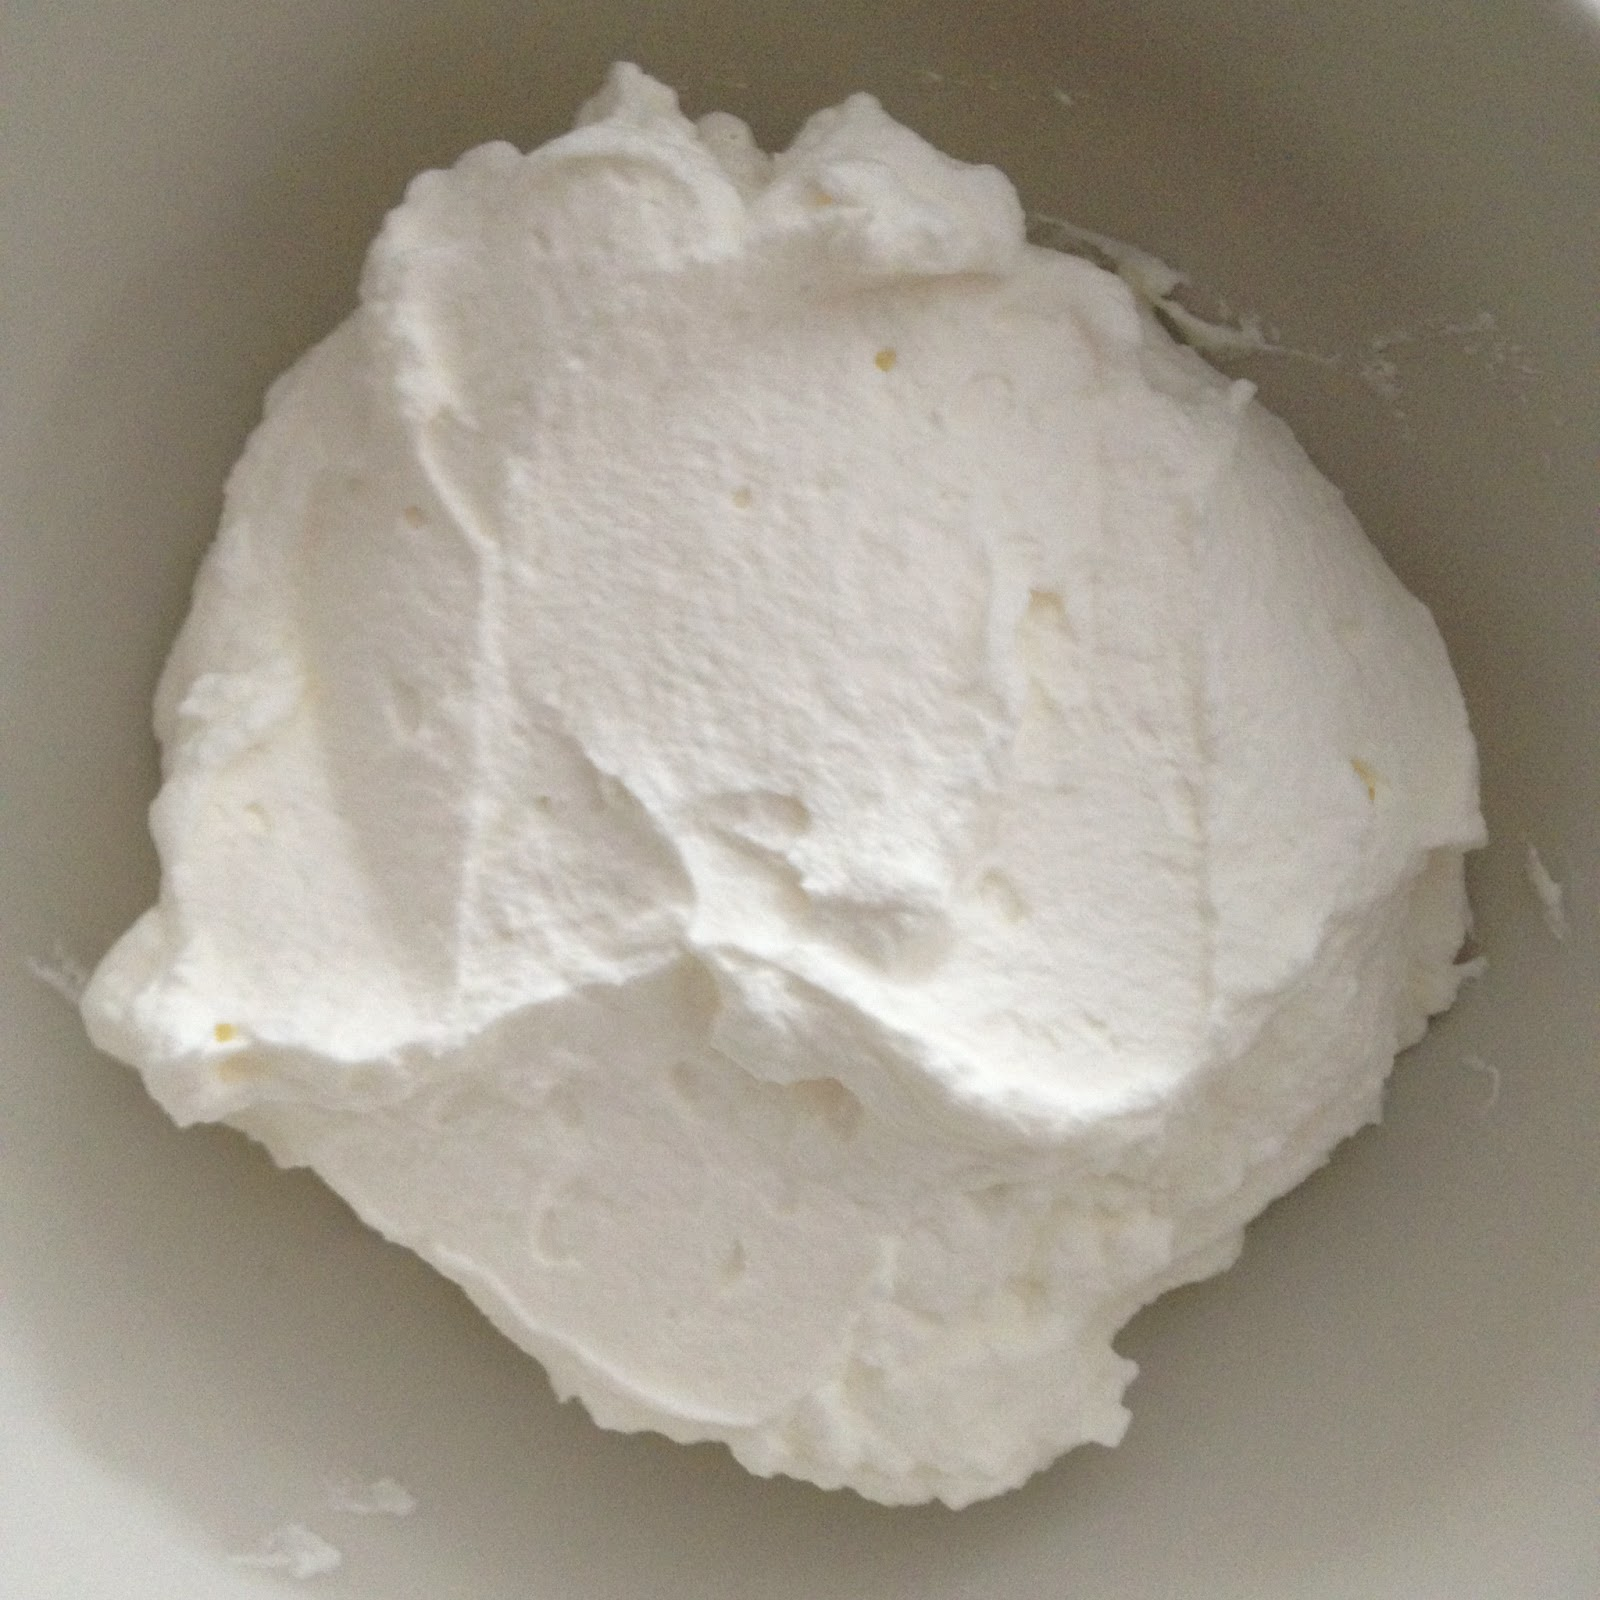 In a medium bowl, whisk whipping cream until fluffy.